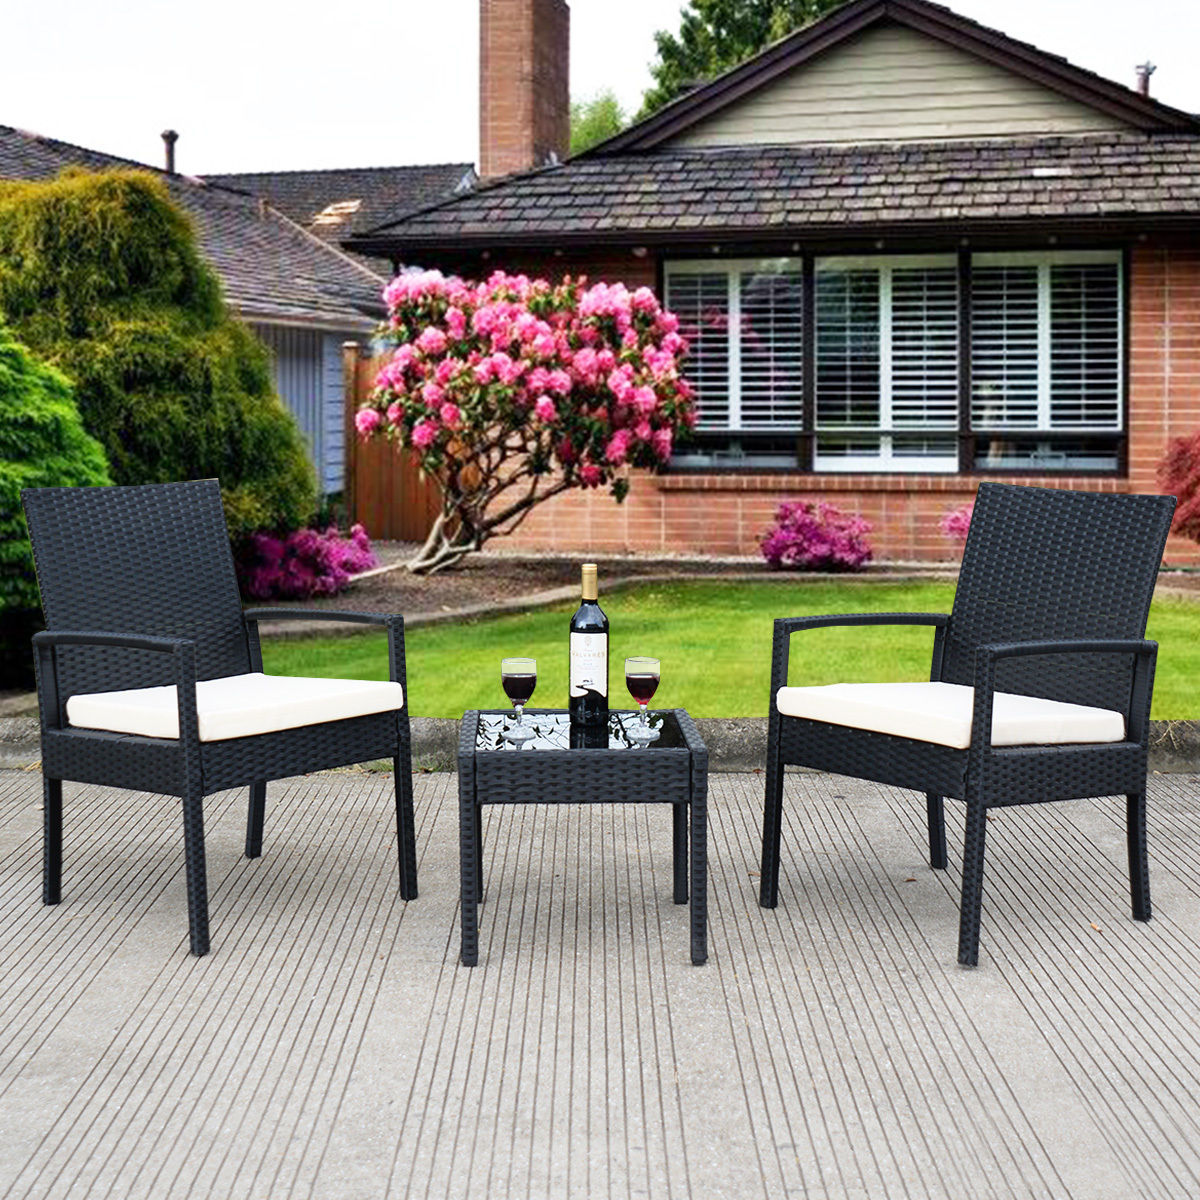 Click here to buy DEAL!!! 3 PS Outdoor Rattan Patio Furniture Set Backyard Garden Furniture by Goplus.